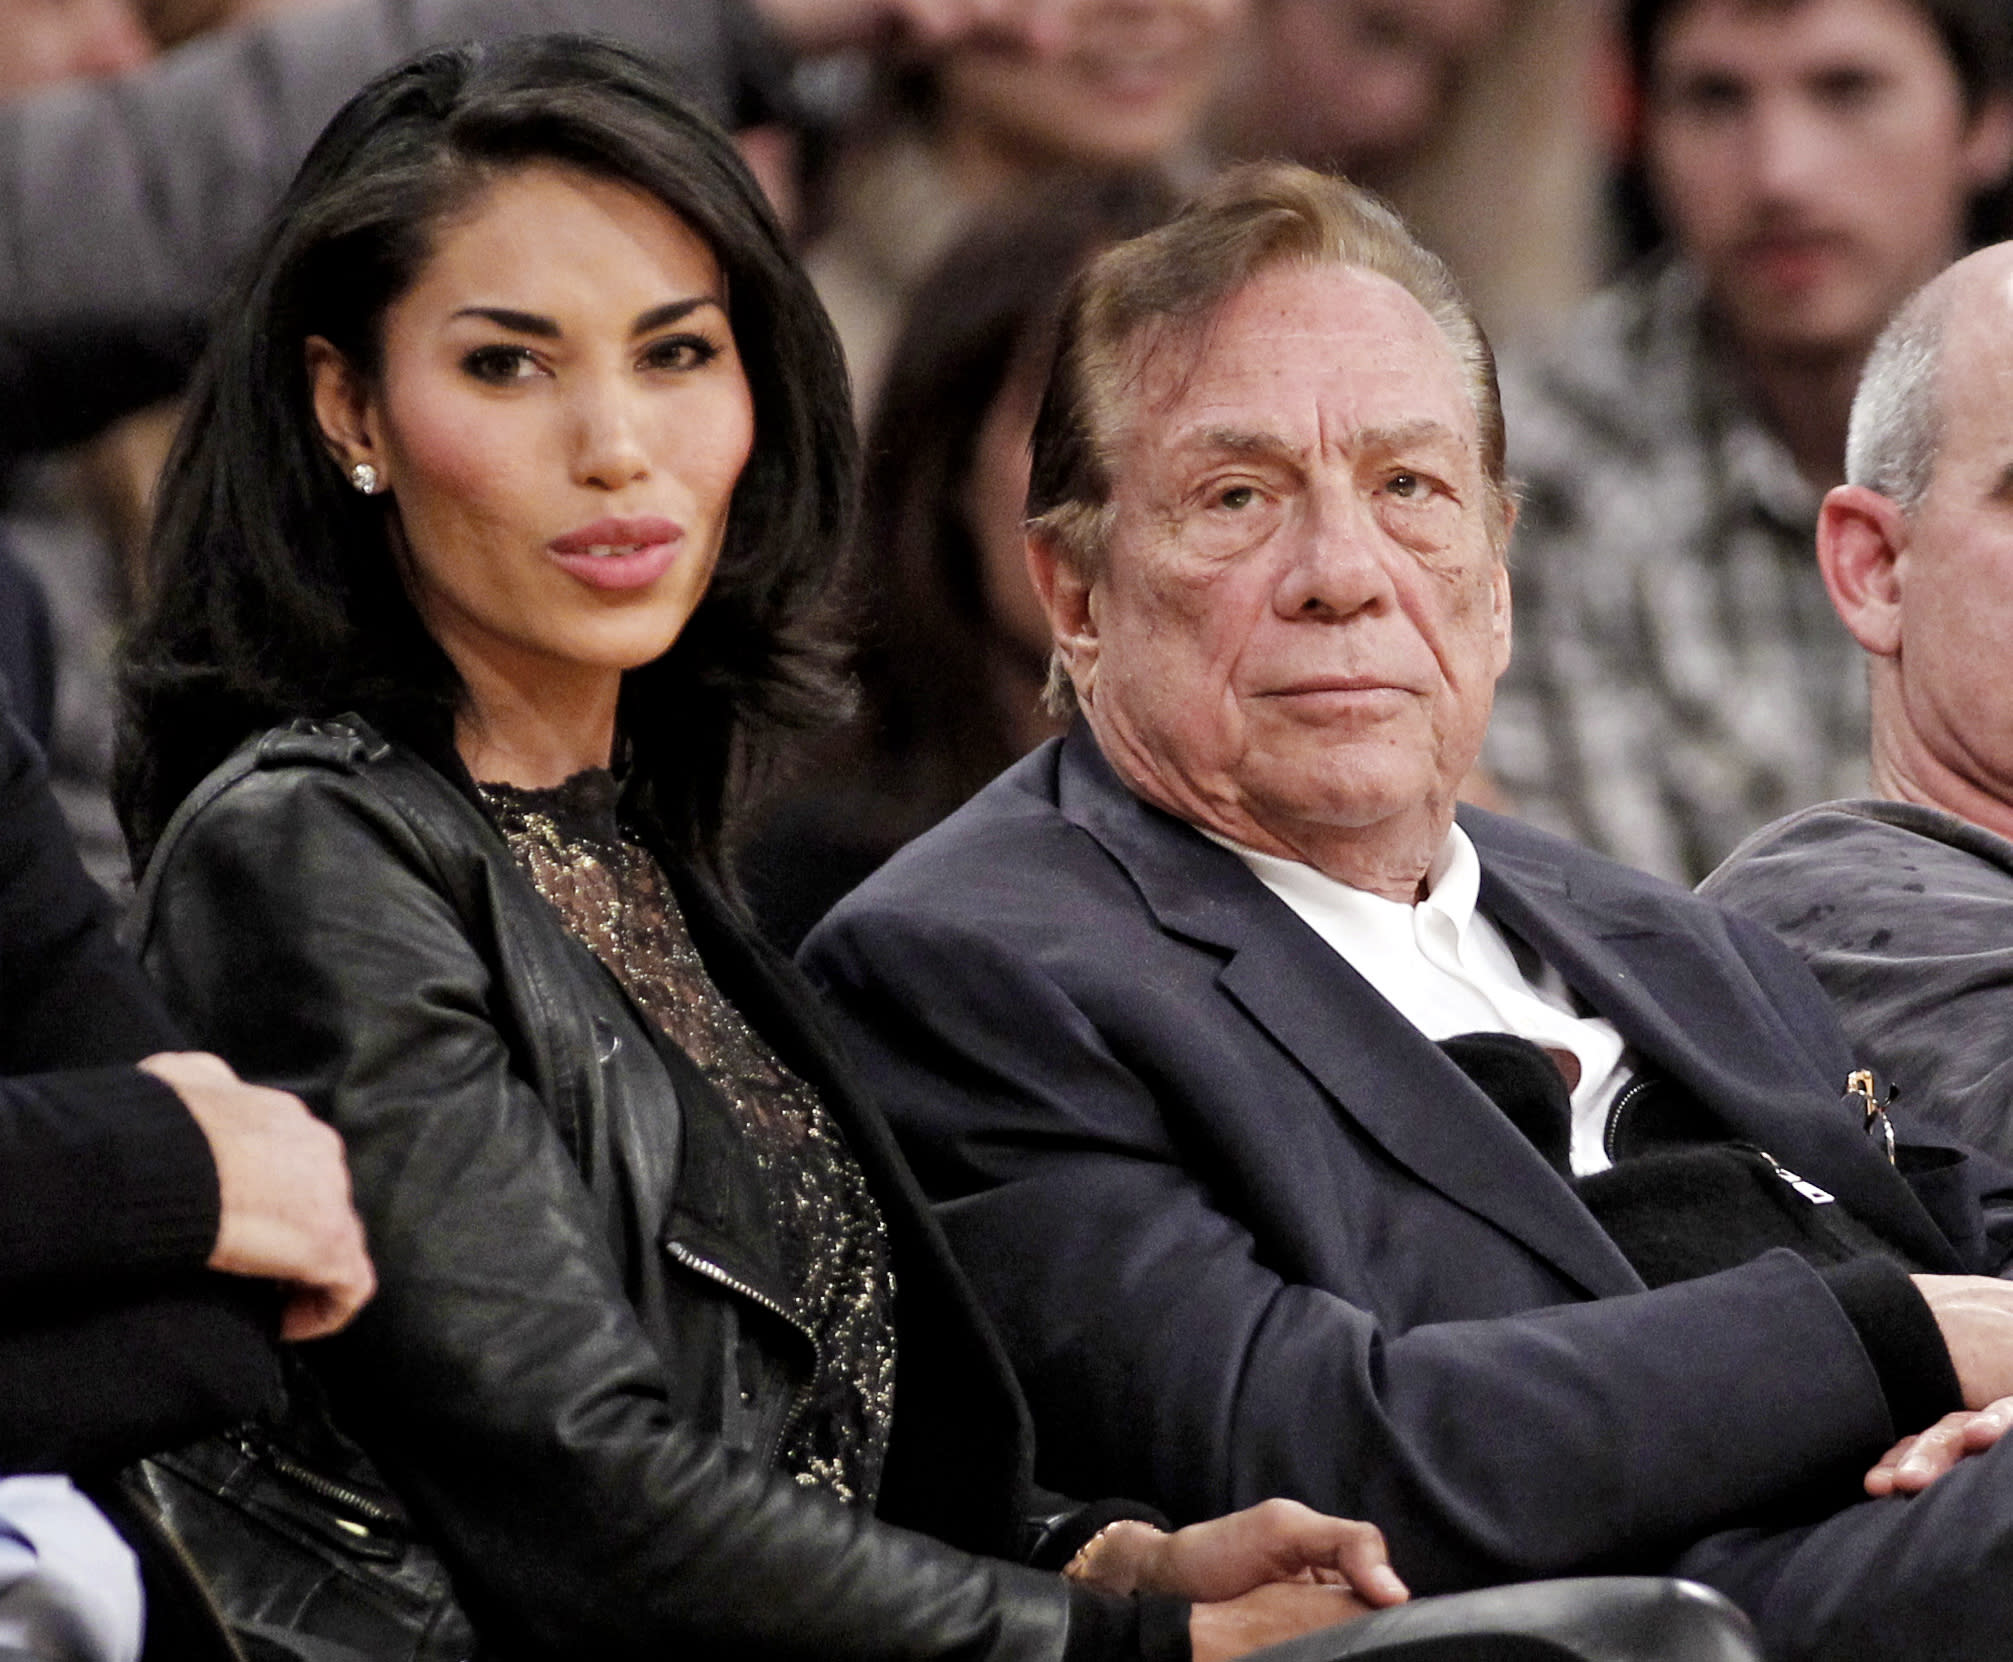 Gift returns: Sterling wife wants house, $1 million